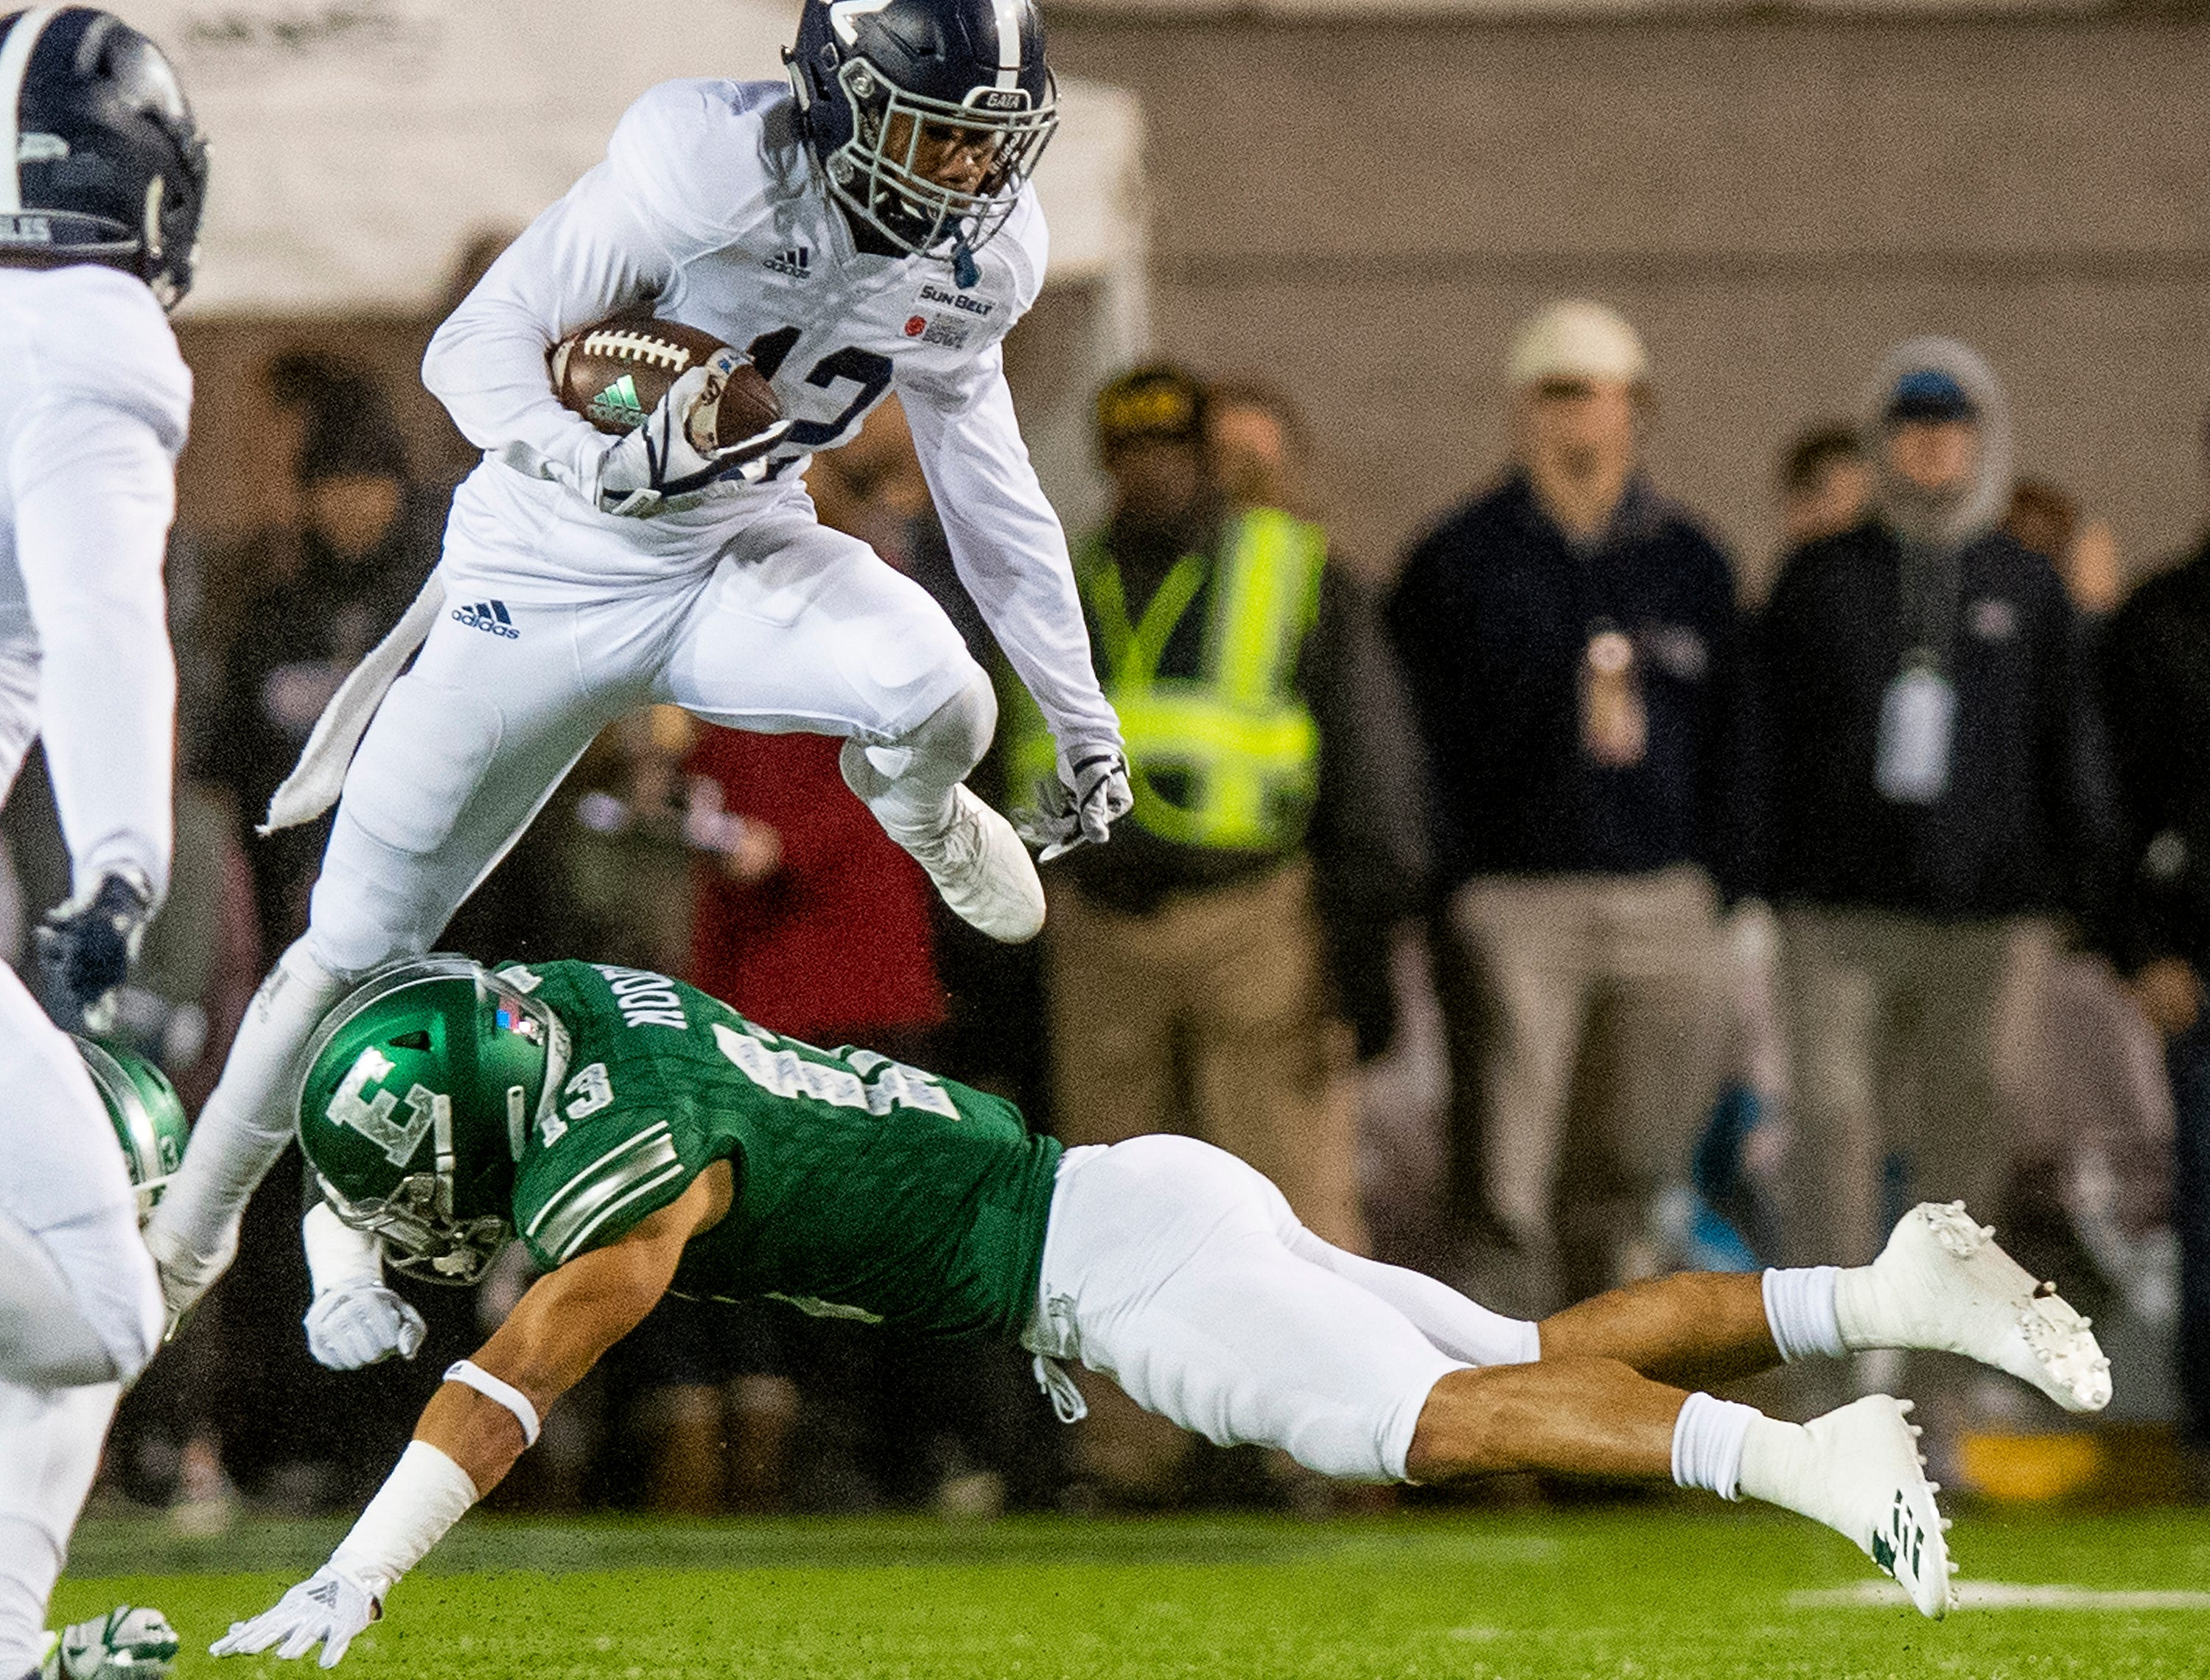 Georgia Southern running back Wesley Kennedy, III, (12) leaps over Eastern Michigan defensive back Justin Moody (13) during first half action in the Raycom Media  Camellia Bowl held at Cramton Bowl in Montgomery, Ala., on Saturday December 15, 2018.